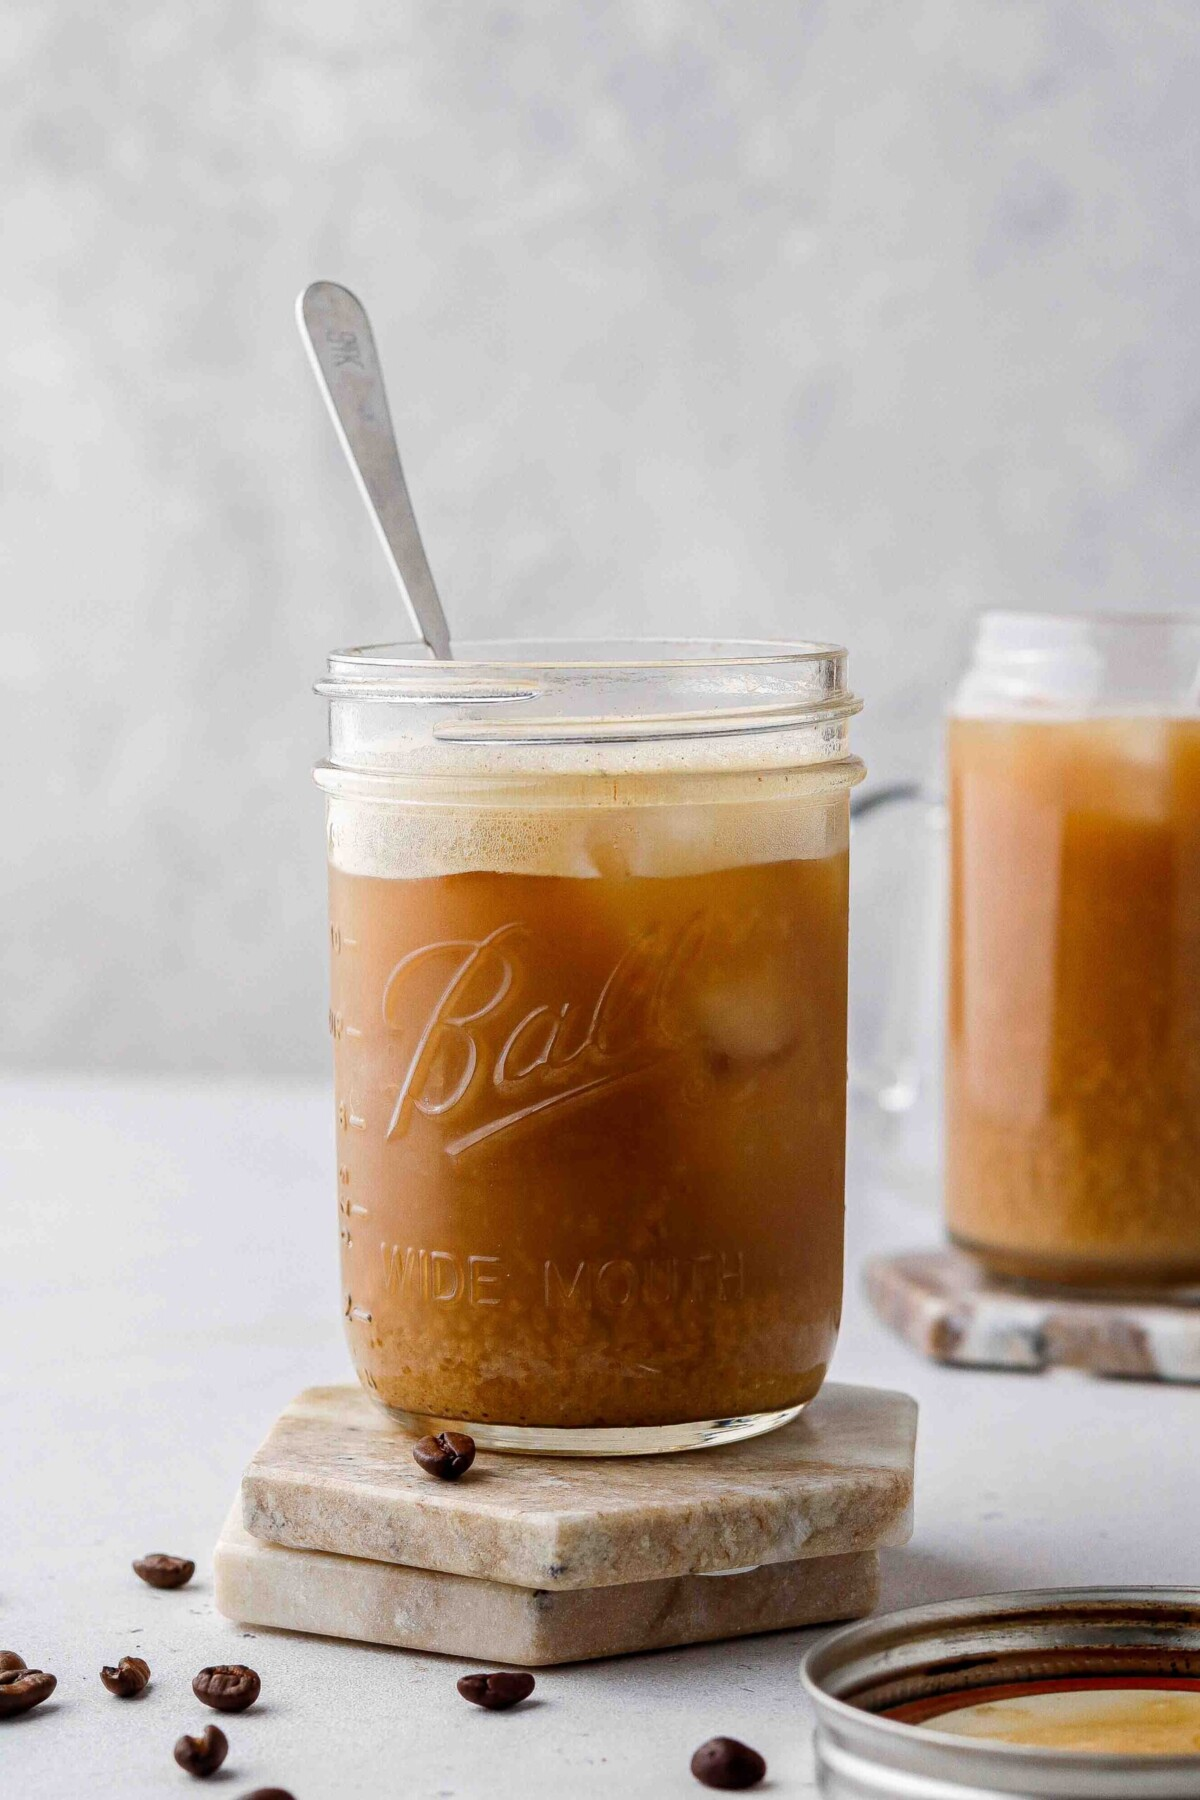 Starbucks Iced Brown Sugar Oat Milk Shaken Espresso Starbucks Copycat Drink